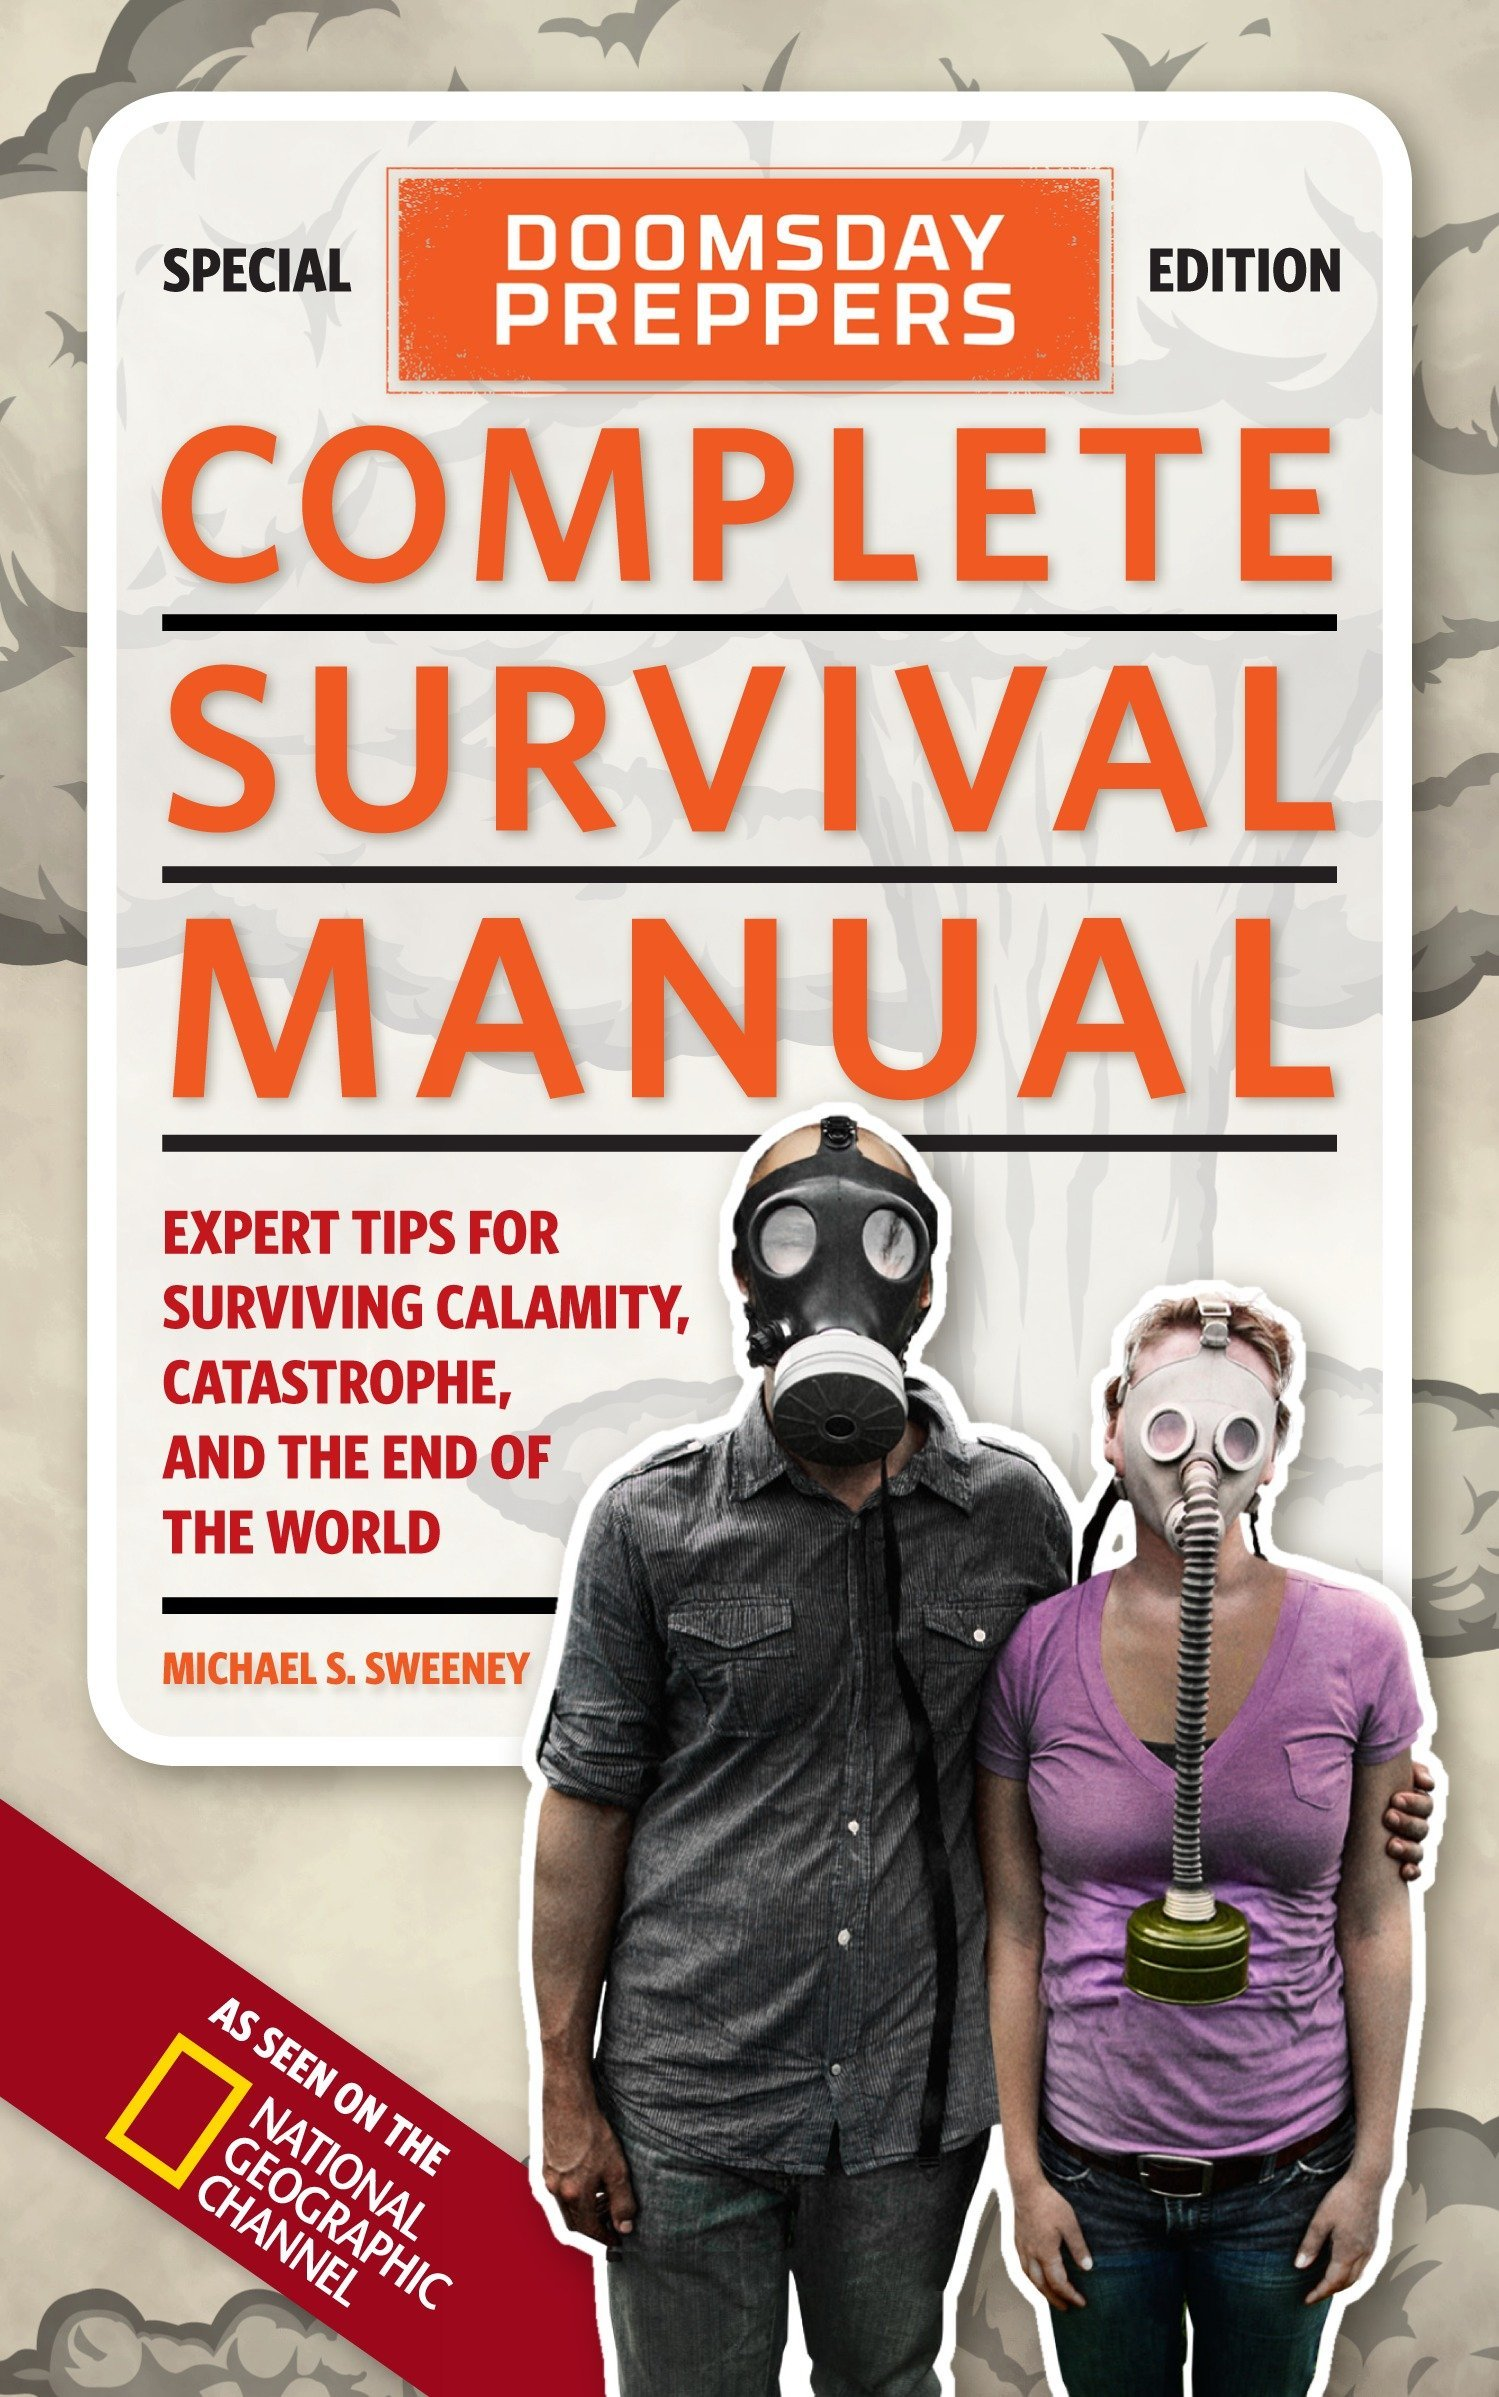 Doomsday Preppers Complete Survival Manual: Expert Tips for Surviving  Calamity, Catastrophe, and the End of the World: Amazon.co.uk: Michael S.  Sweeney: ...